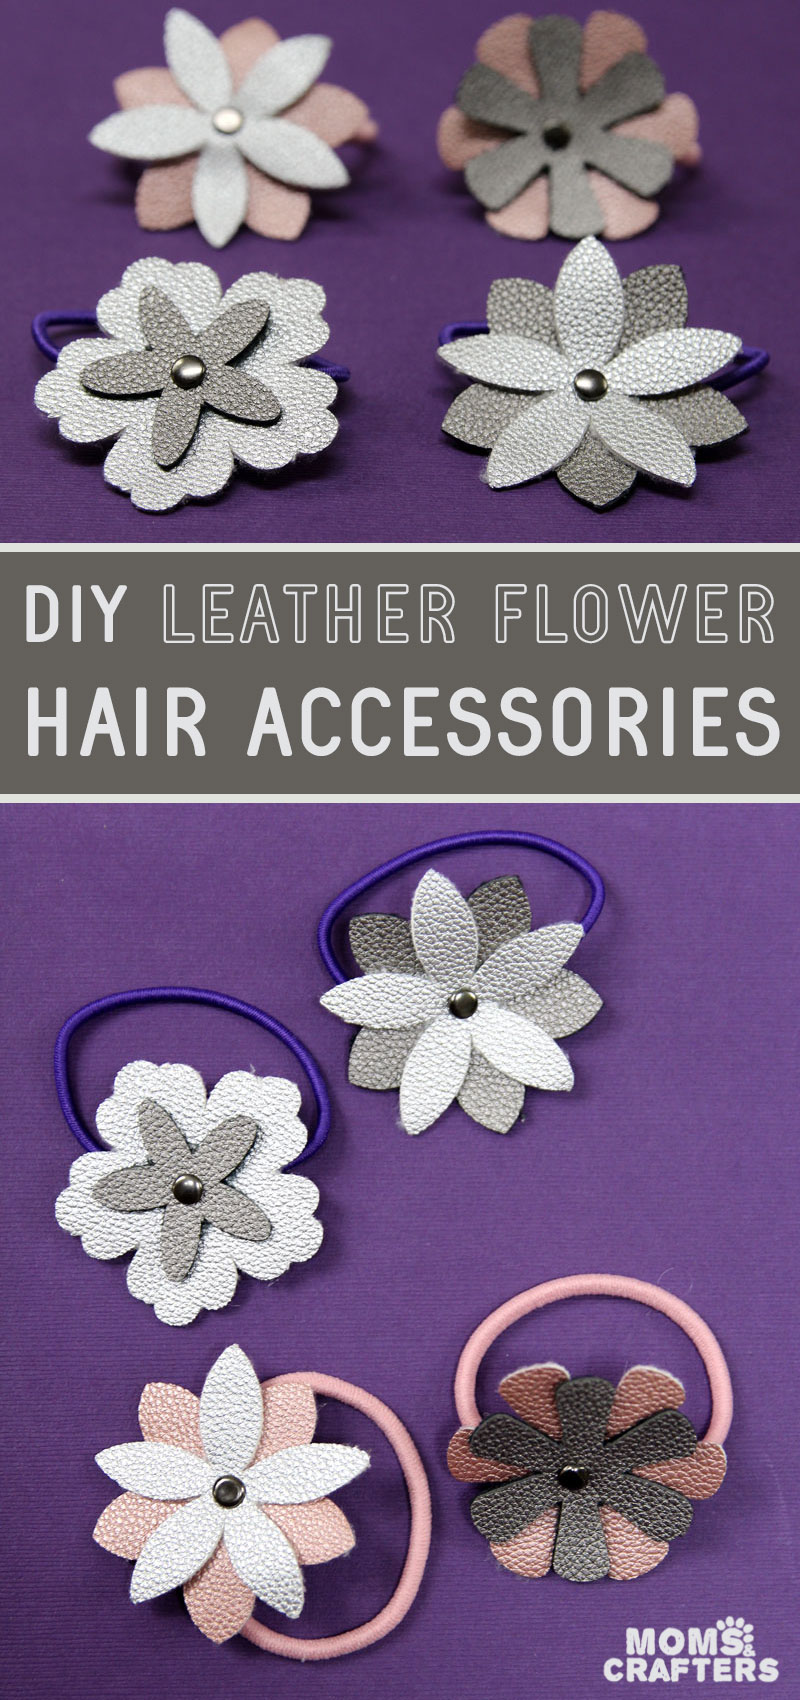 DIY flower hair accessories from leather